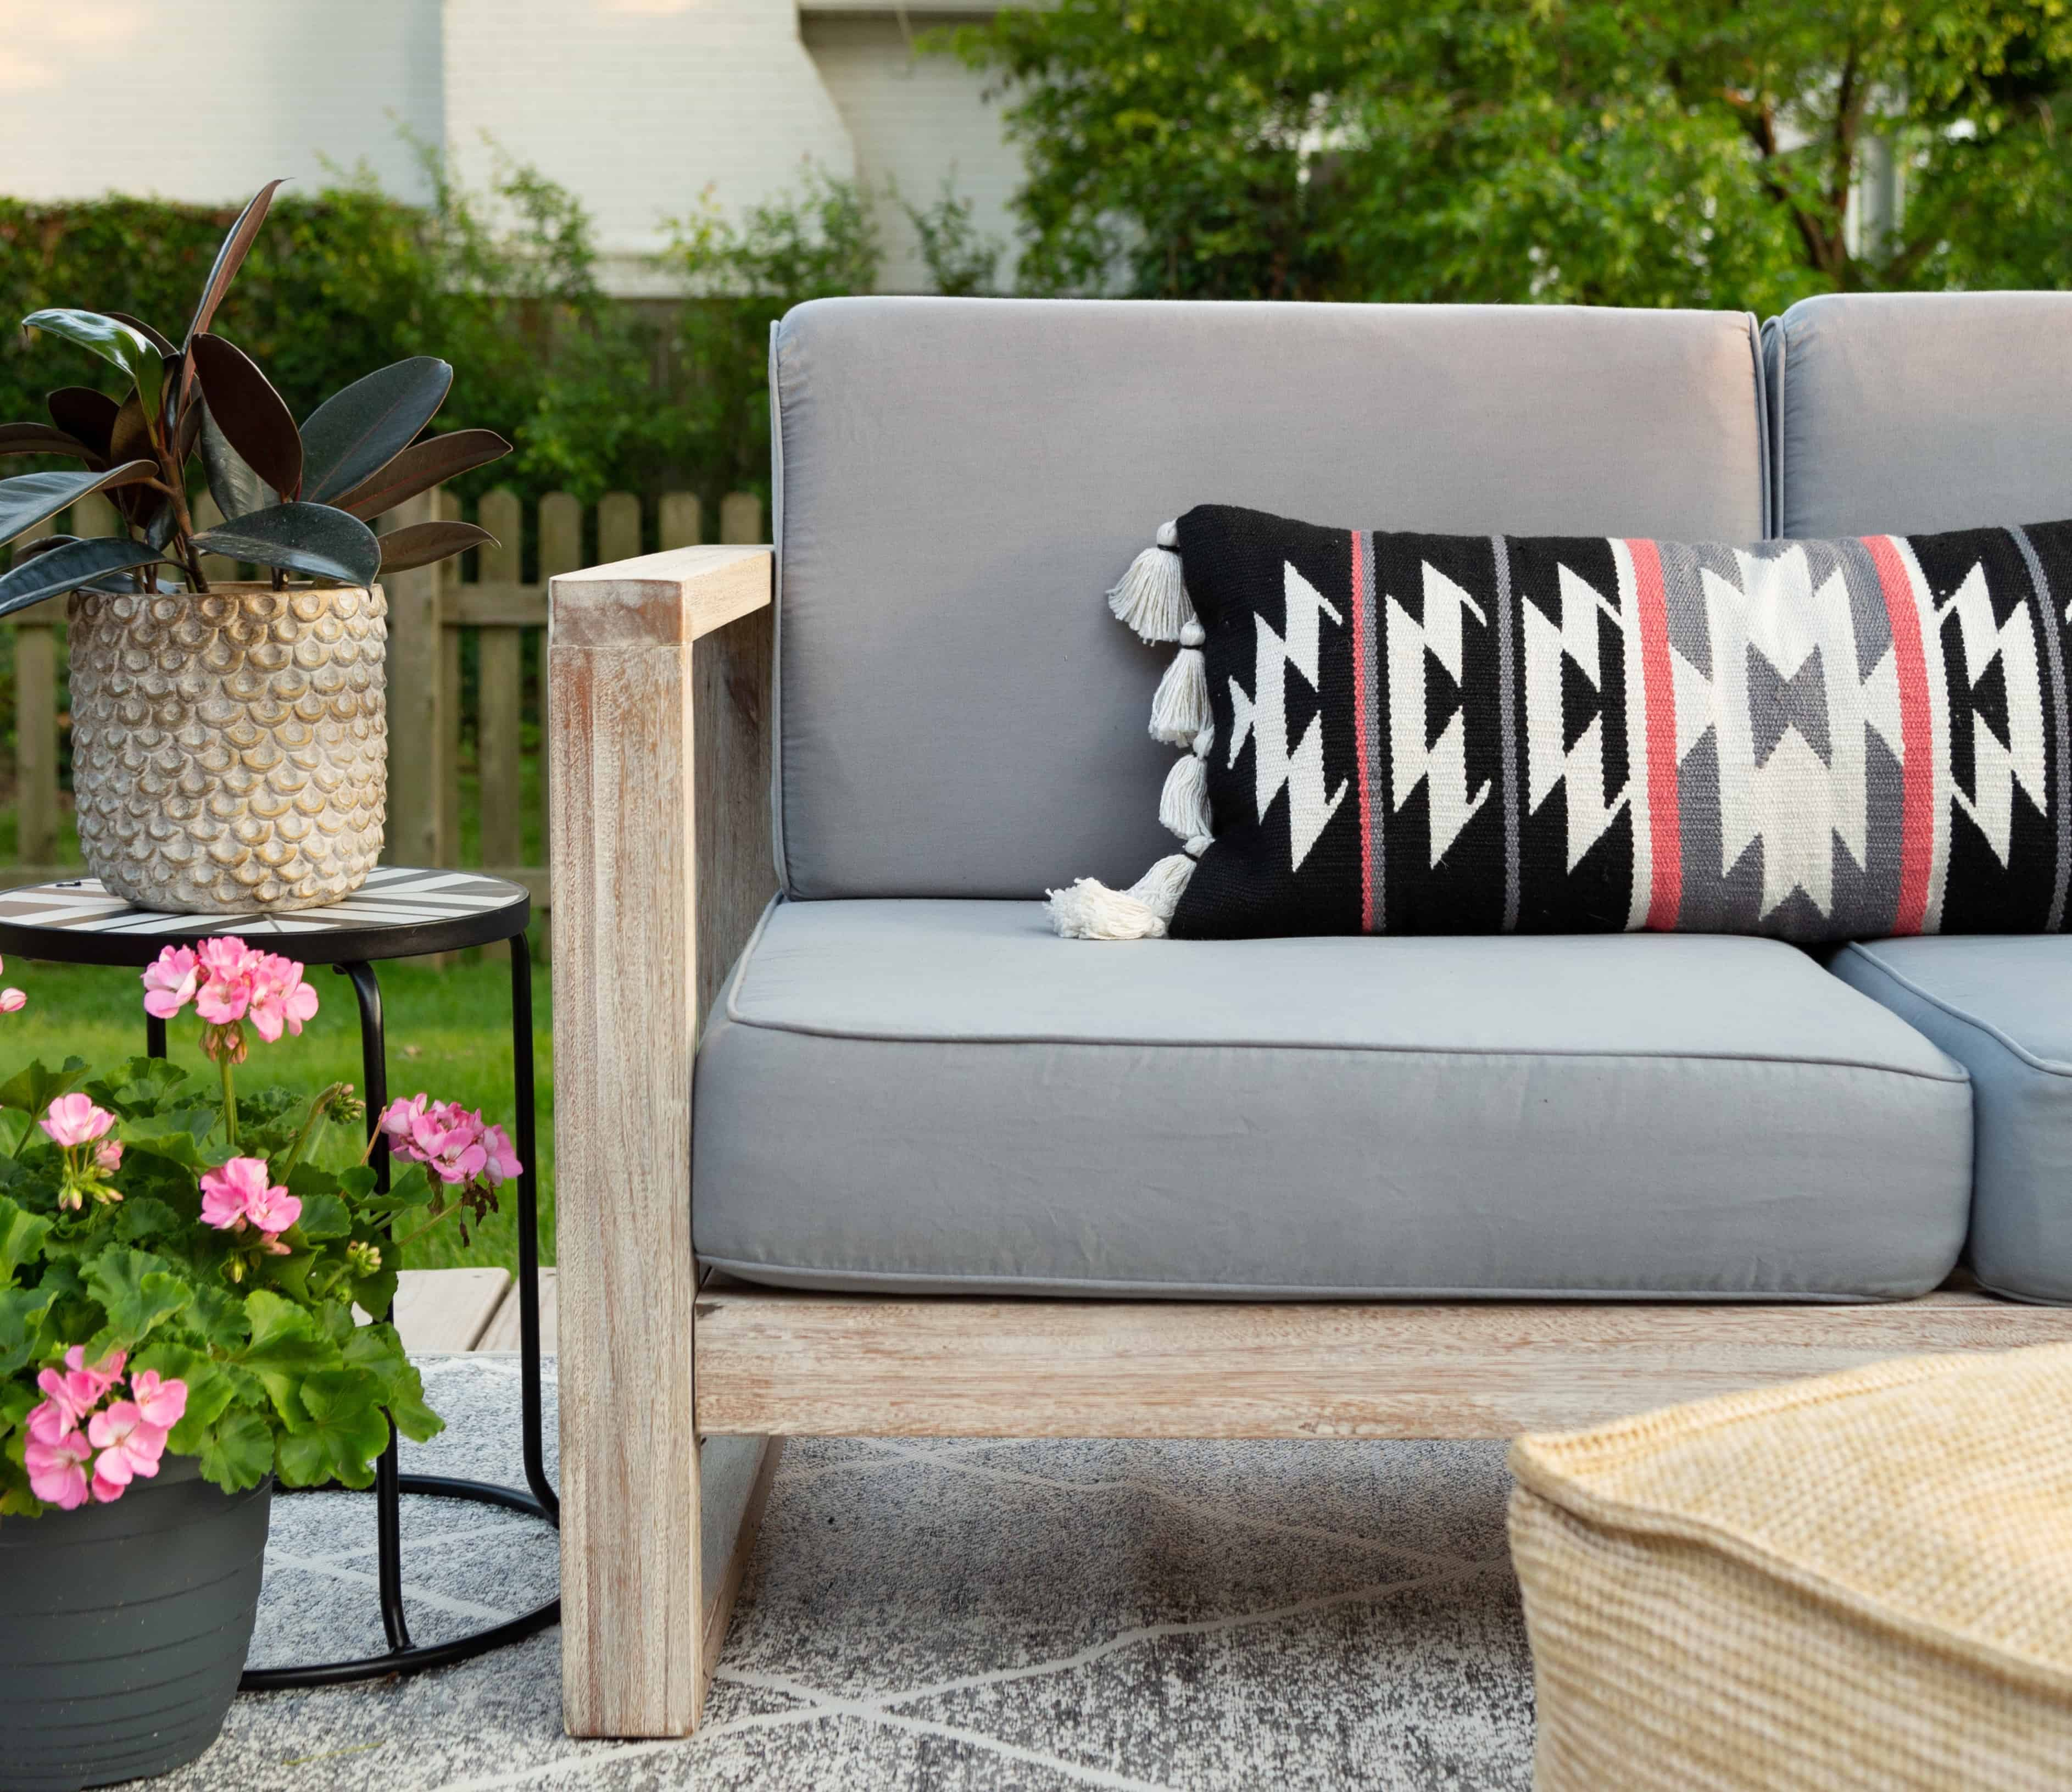 Dyed Outdoor Cushions – Rit Dye